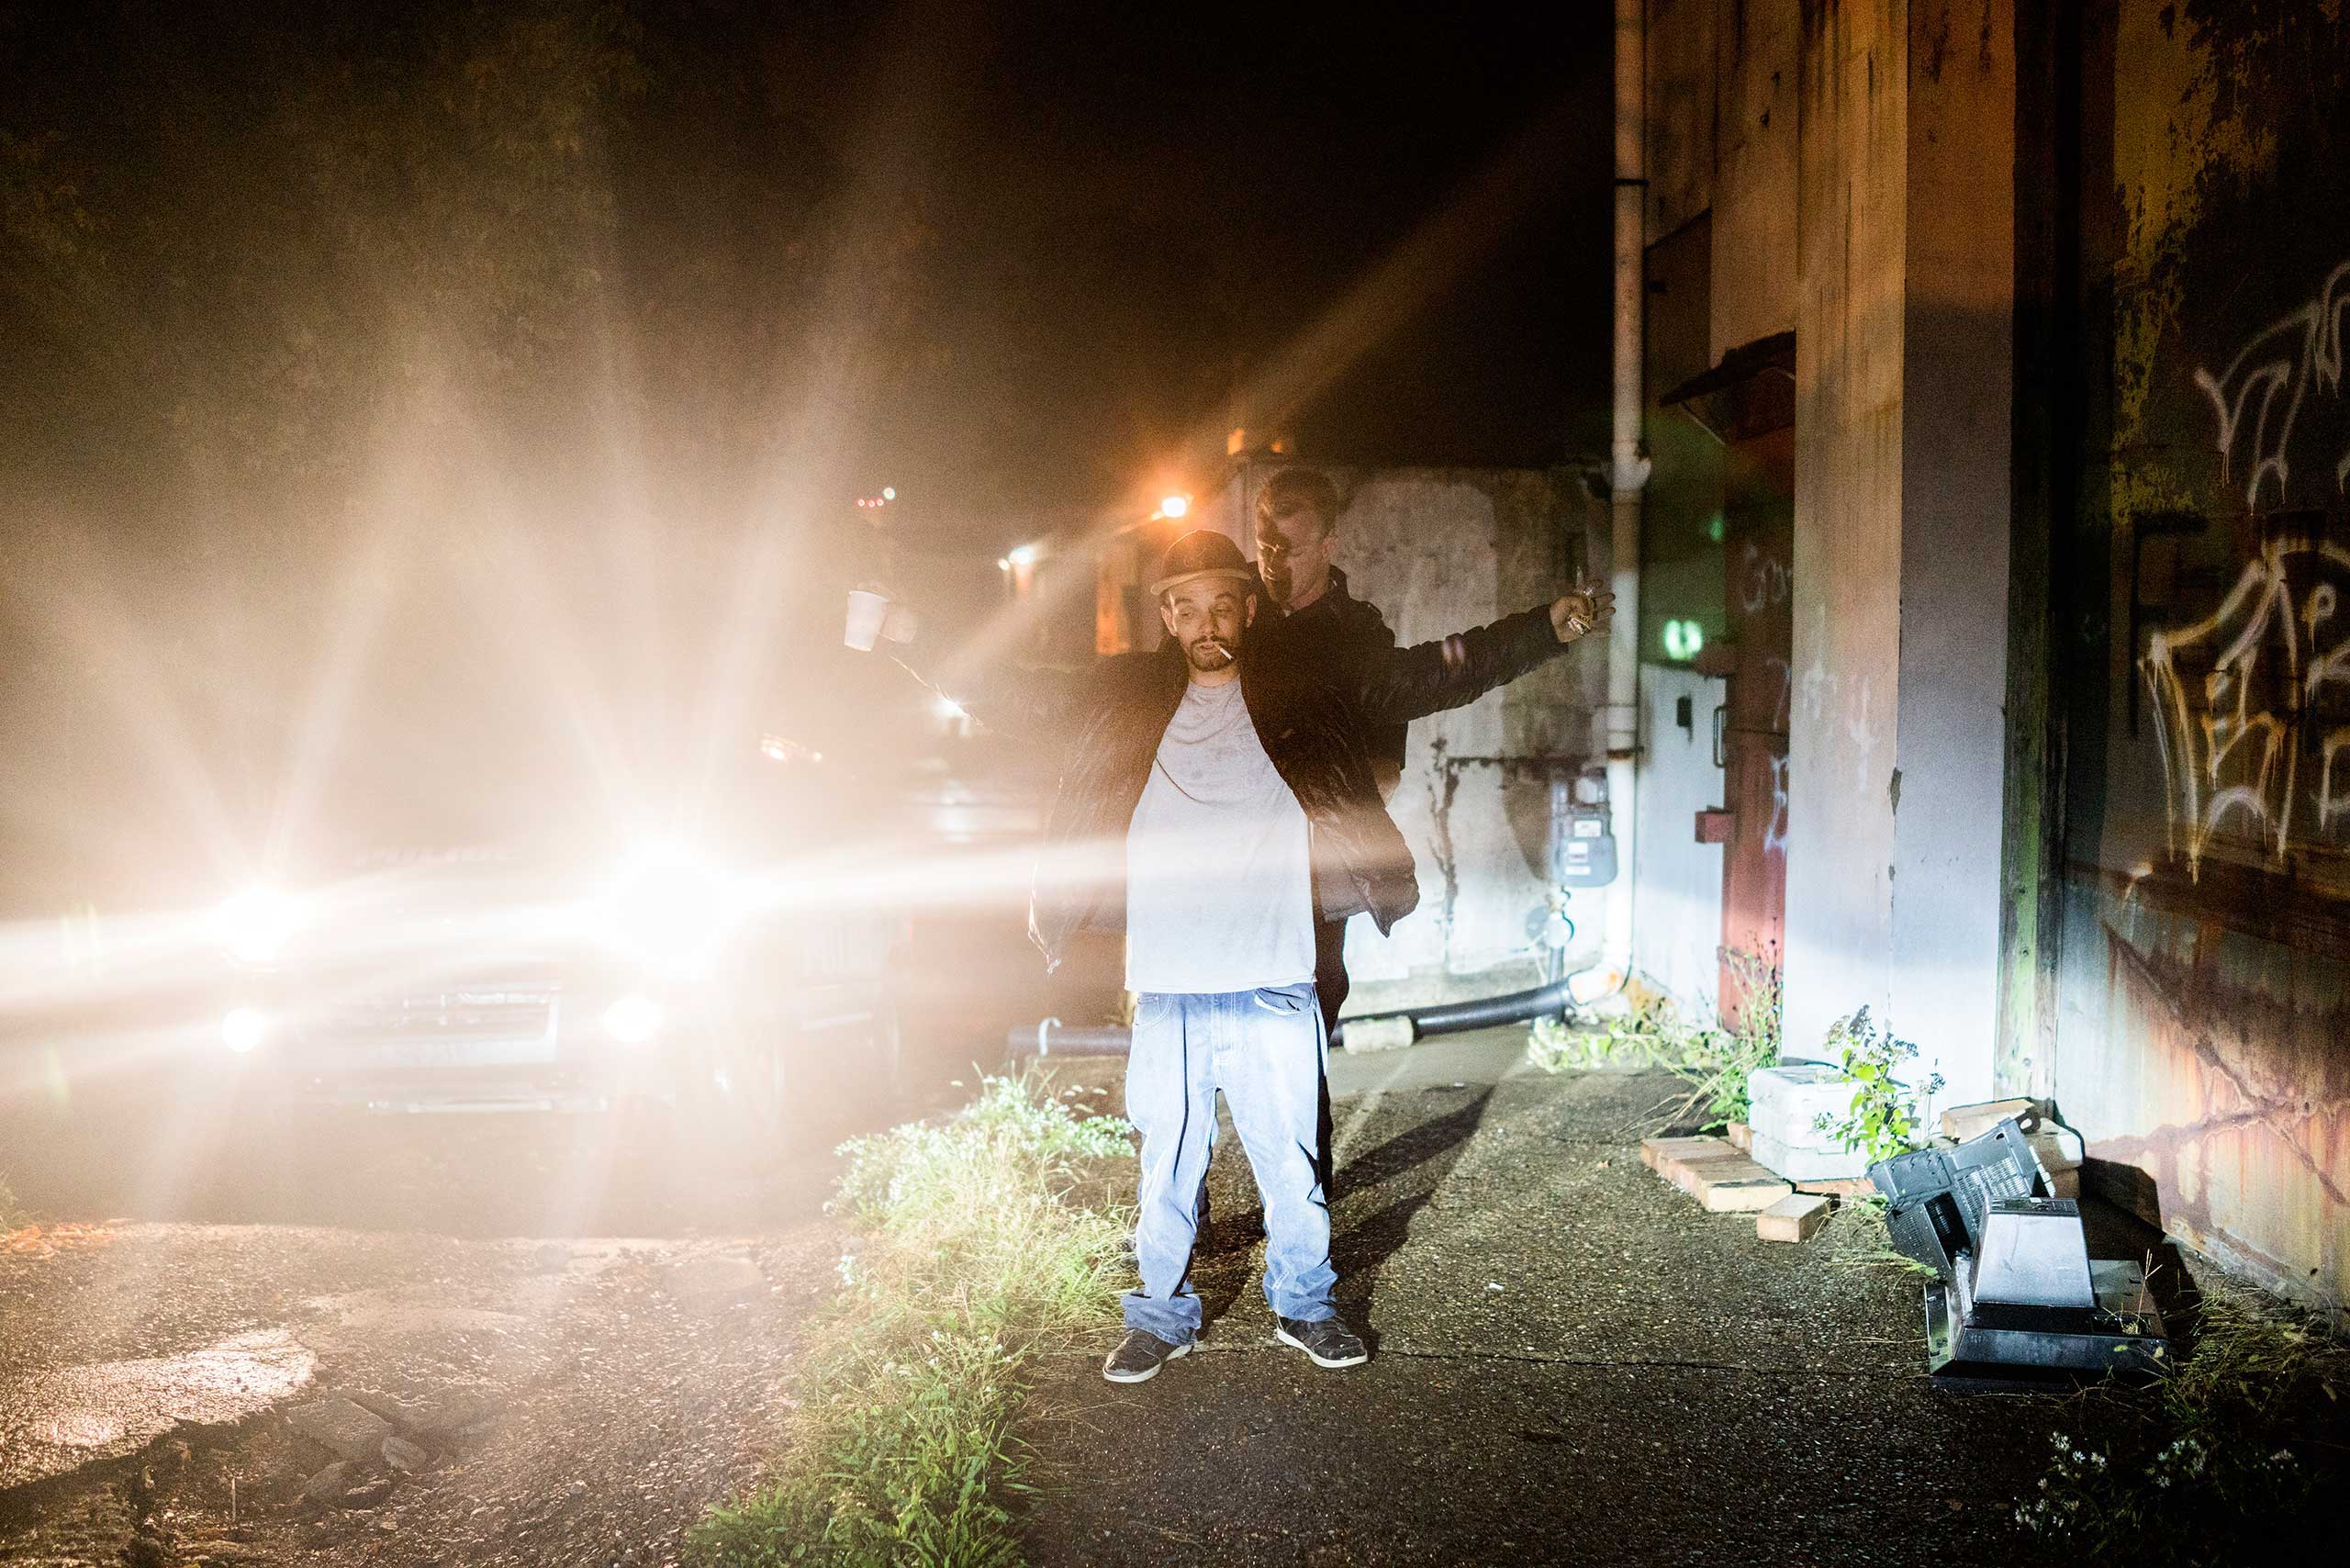 A young man, who police said was under the influence, is stopped in an alleyway by officers and searched in East Liverpool, Ohio, on Oct. 7, 2016. When nothing was found, he was eventually released.